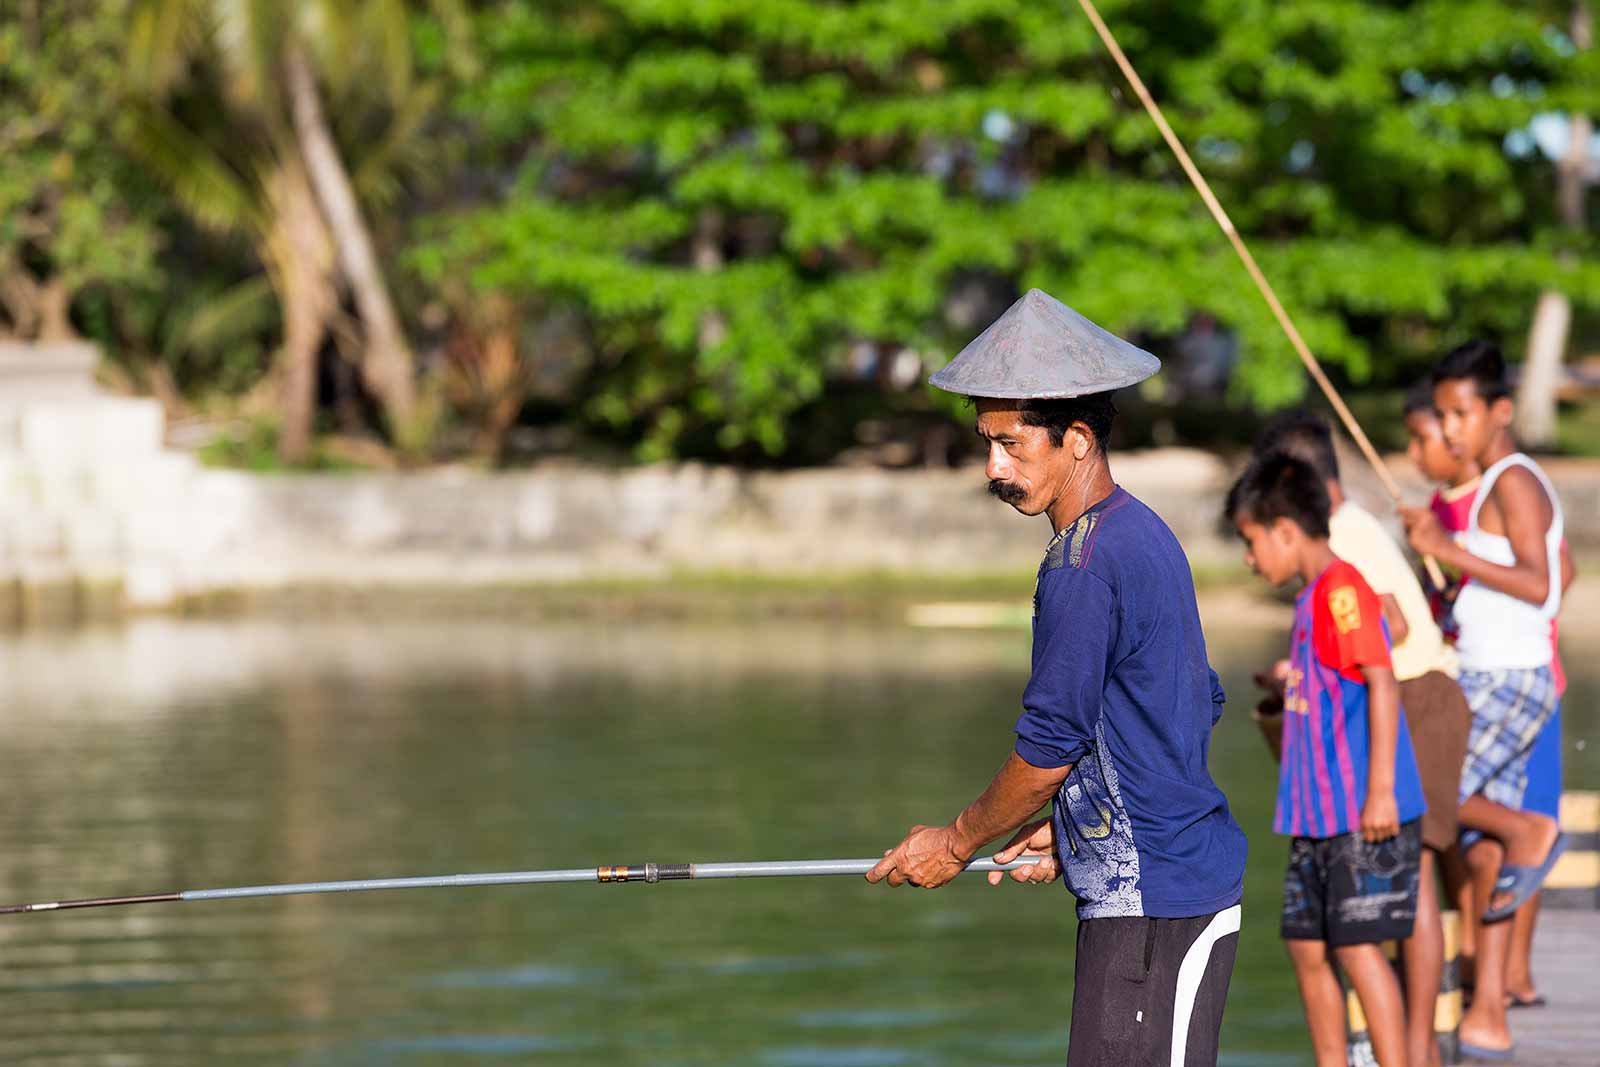 Maluku Islands: Fishermen along the jetty can be seen pretty much everywhere along the islands.